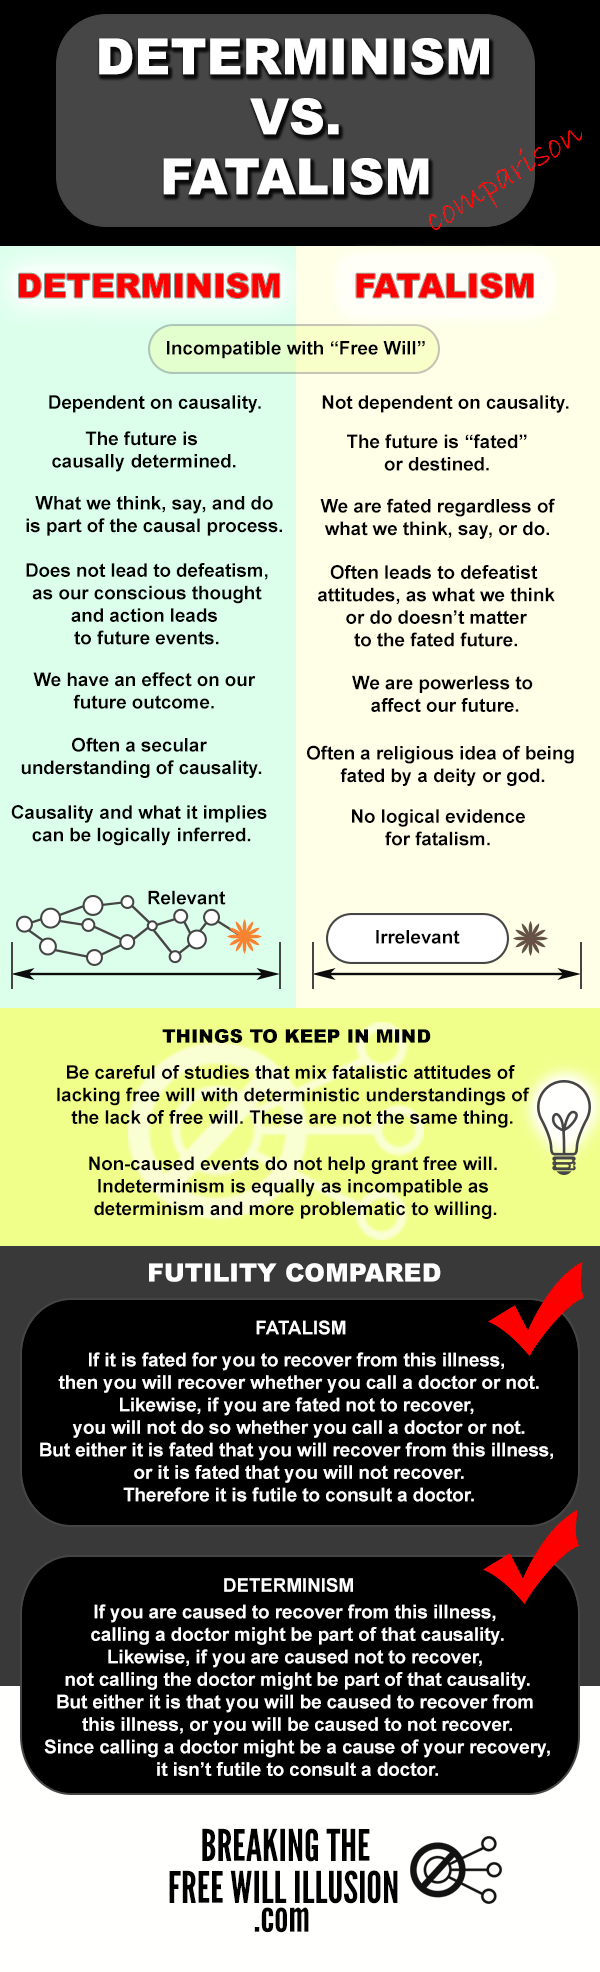 DETERMINISM-VS-FATALISM-infographic